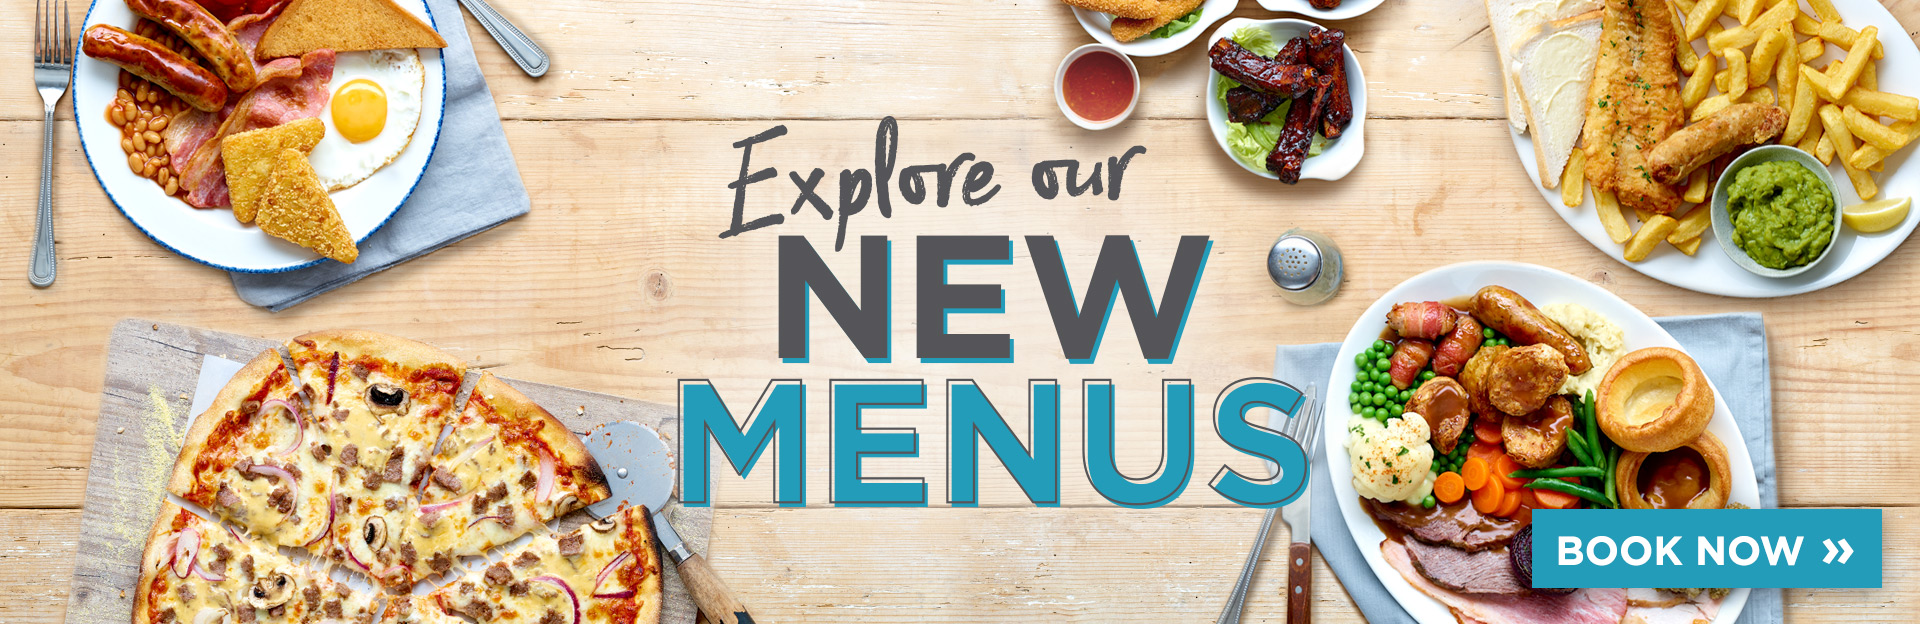 New menu at The Crown